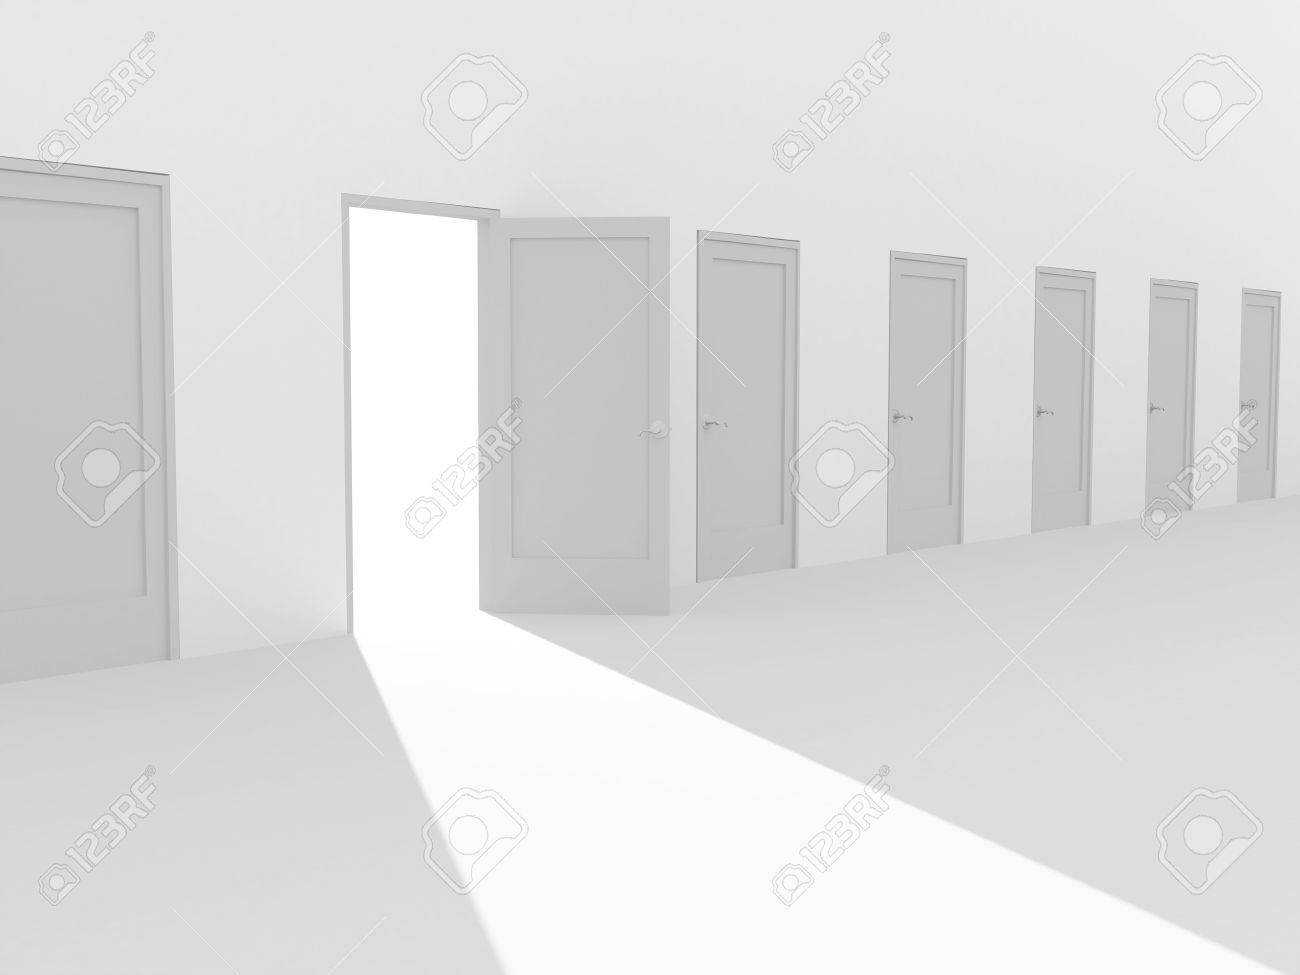 Open door closed door - Open Door In A Row Of The Closed Doors Stock Photo 4252105